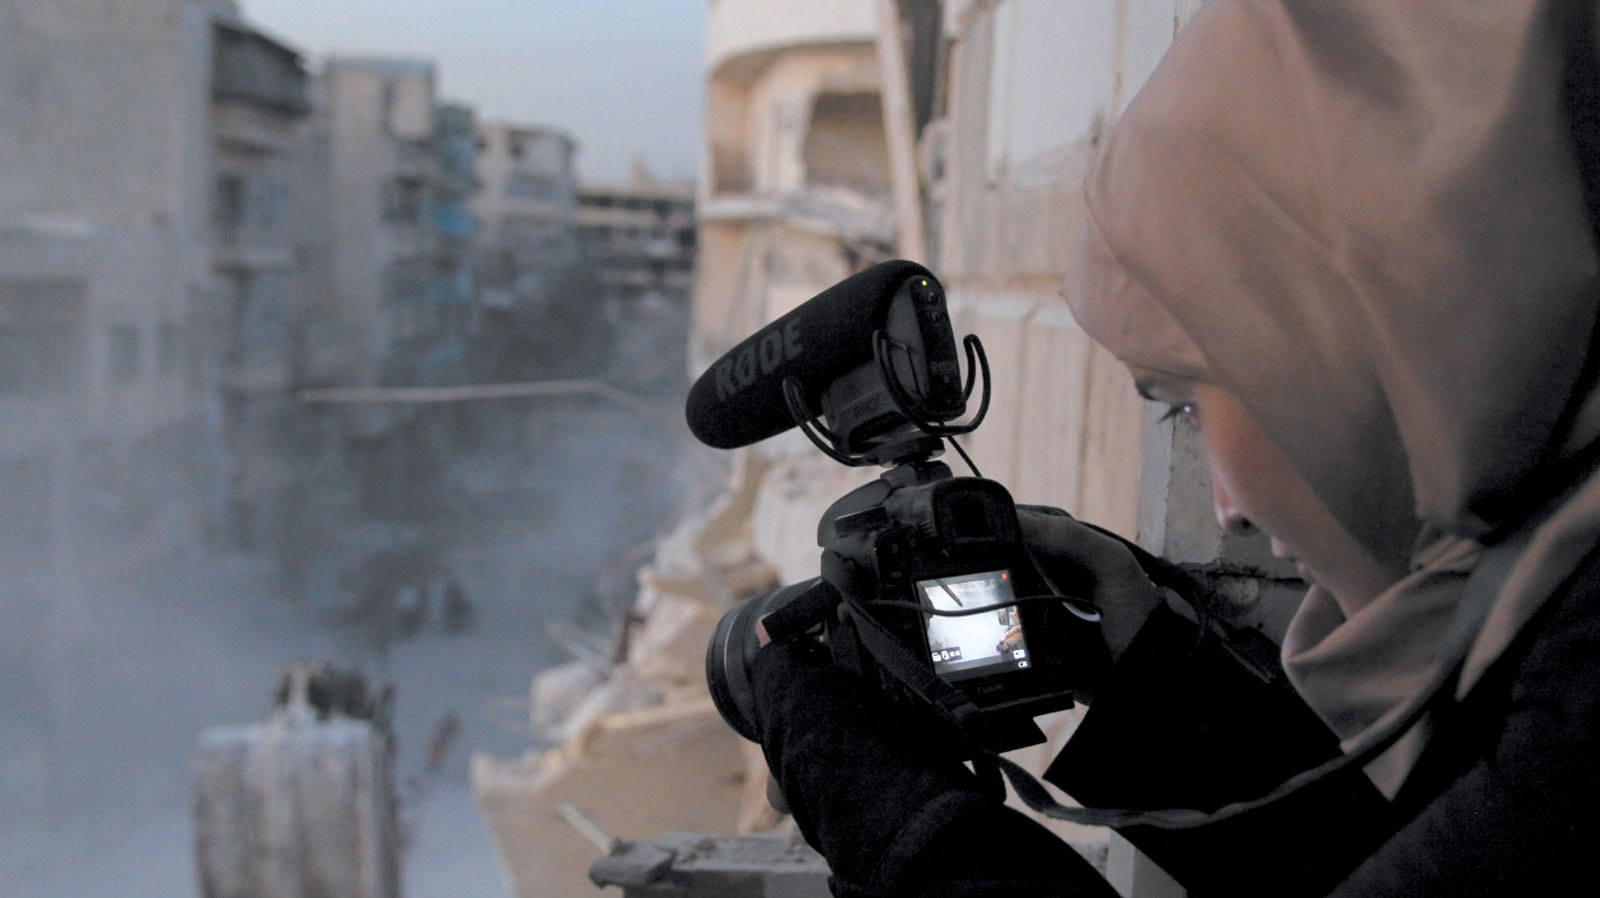 Waad al-Kateab filming the ruins of a building destroyed by bombing, east Aleppo, October 2016